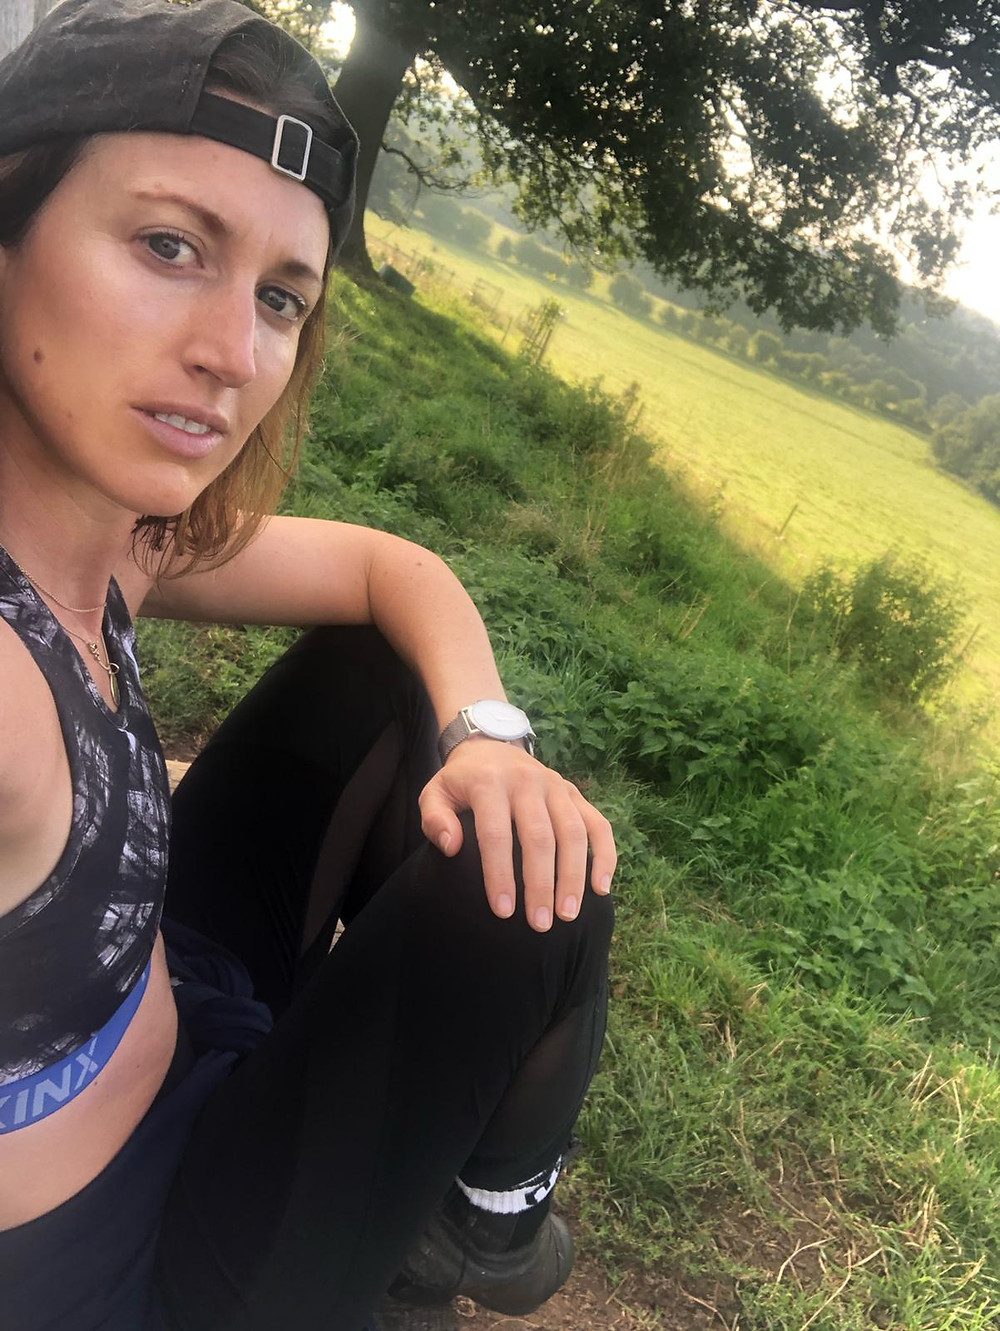 Francesca Gamble going for a run to keep fit and healthy as part of her self care routine